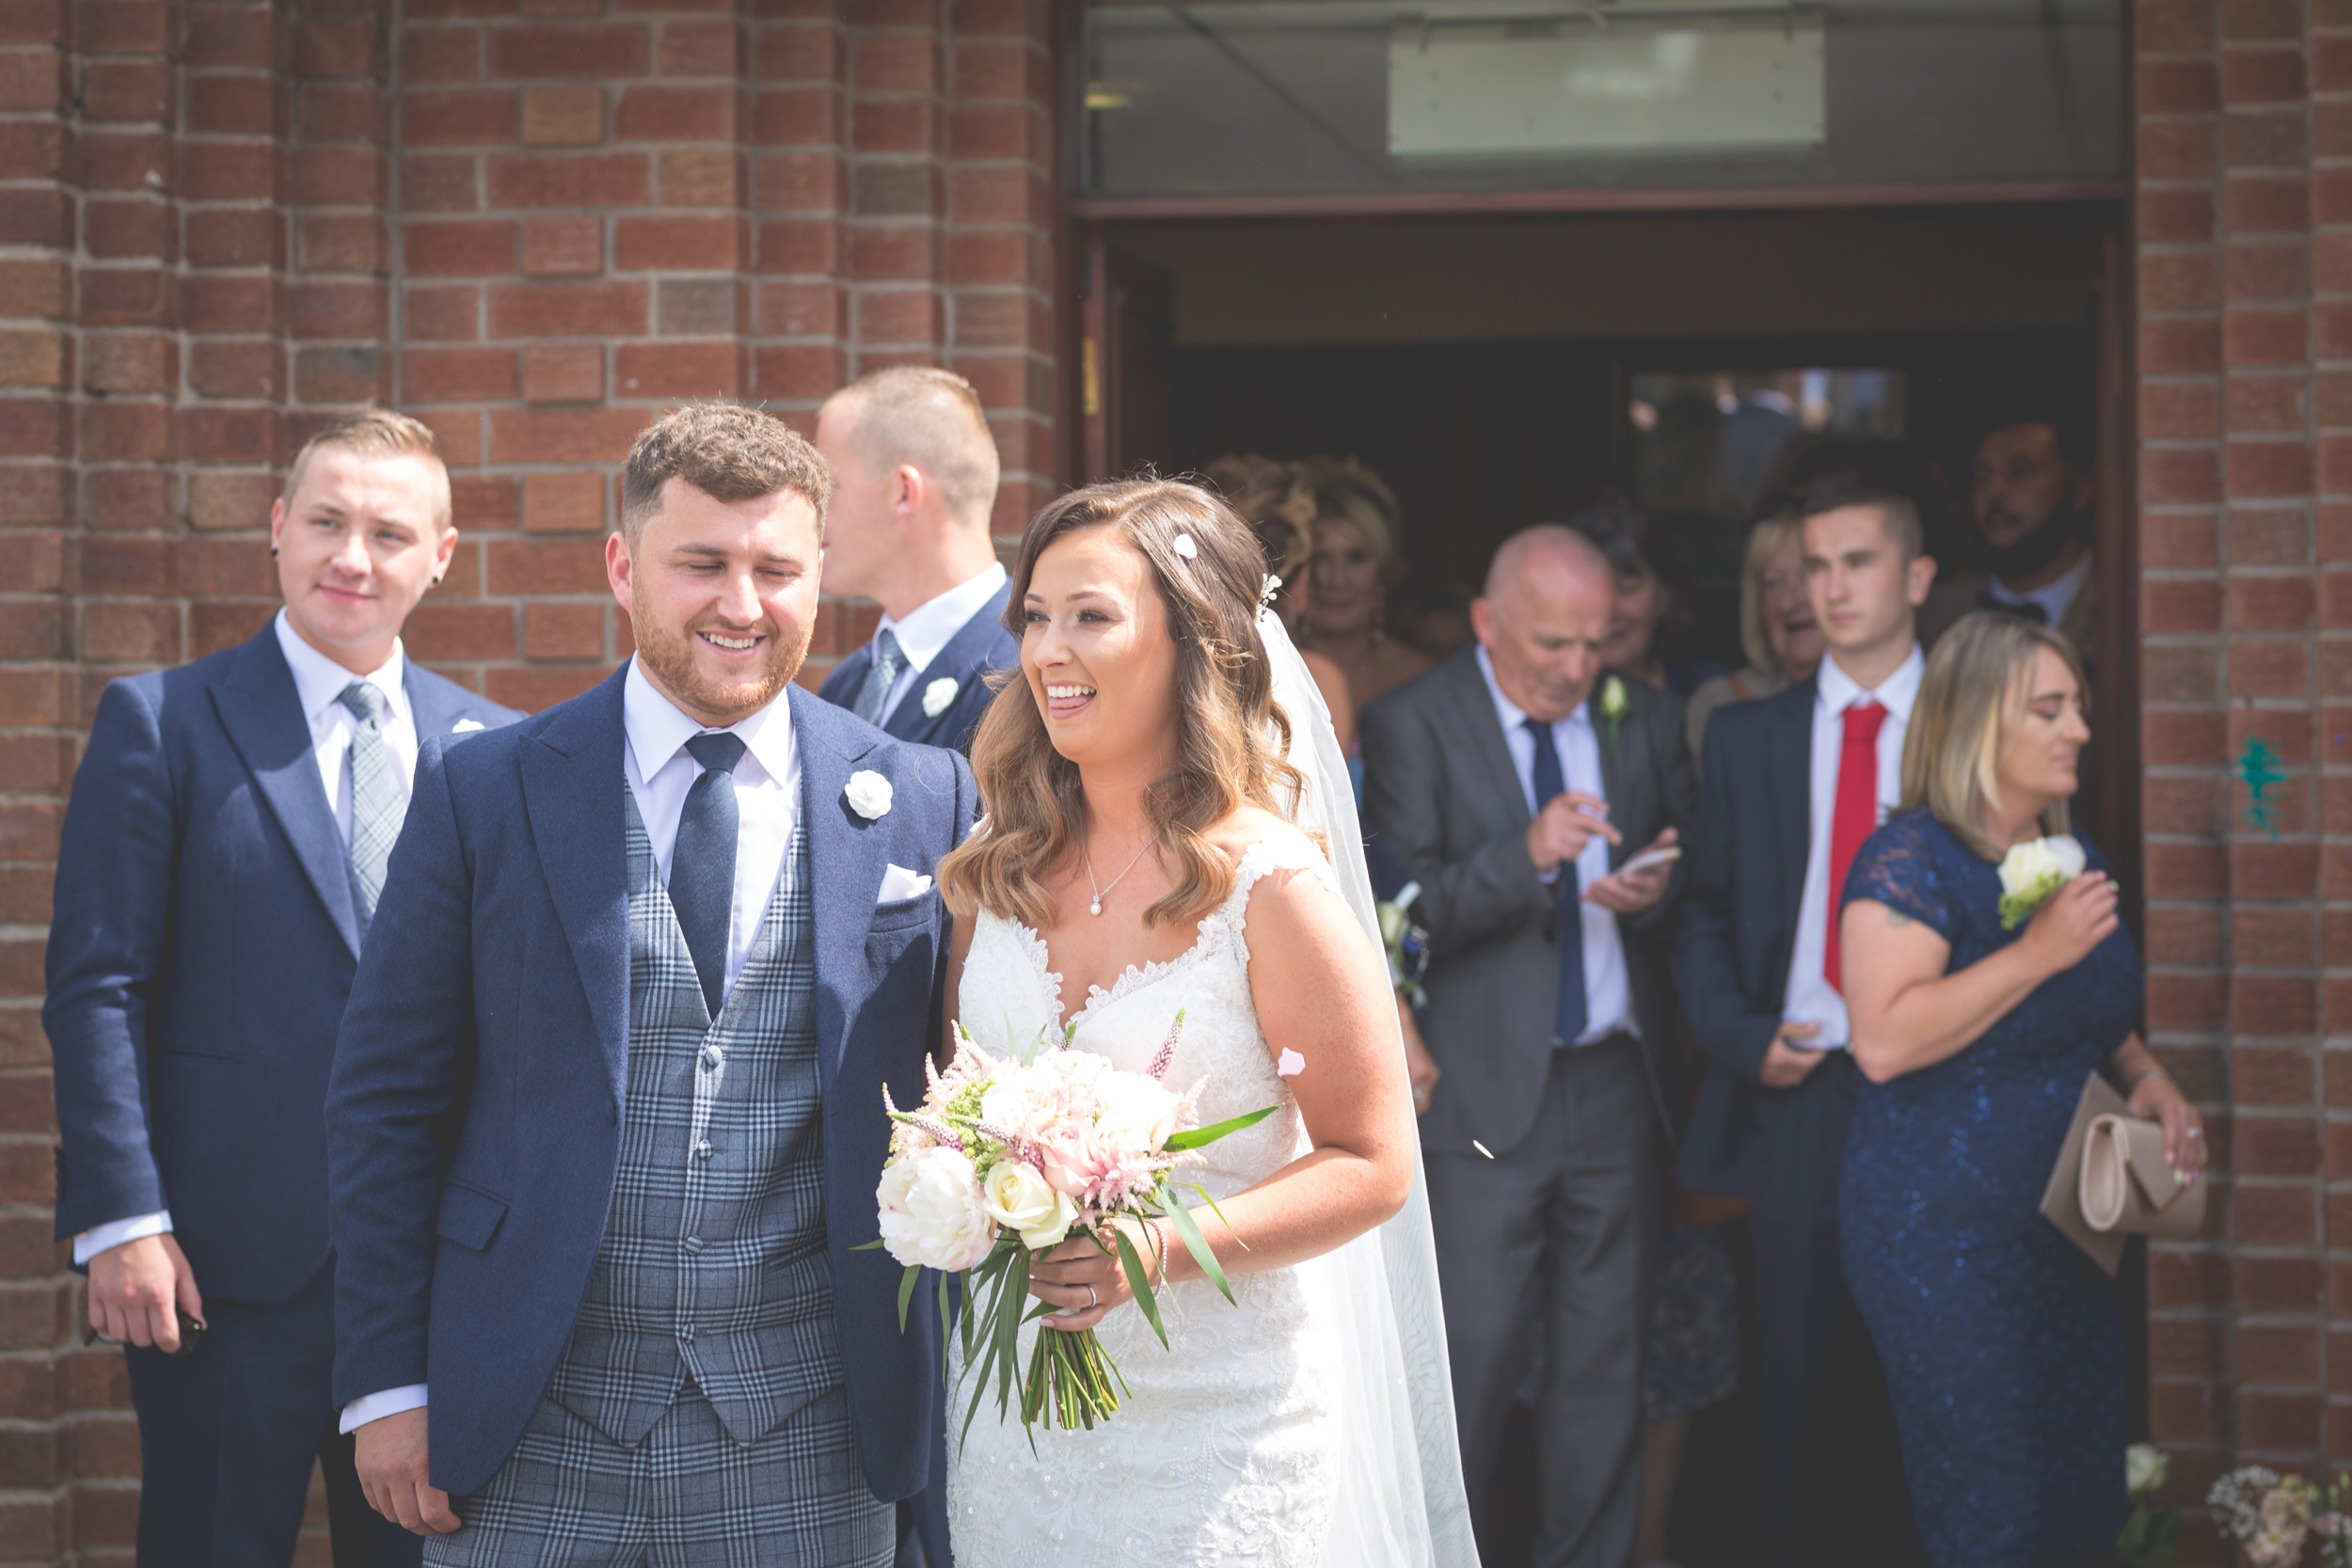 Brian McEwan | Northern Ireland Wedding Photographer | Rebecca & Michael | Ceremony-116.jpg